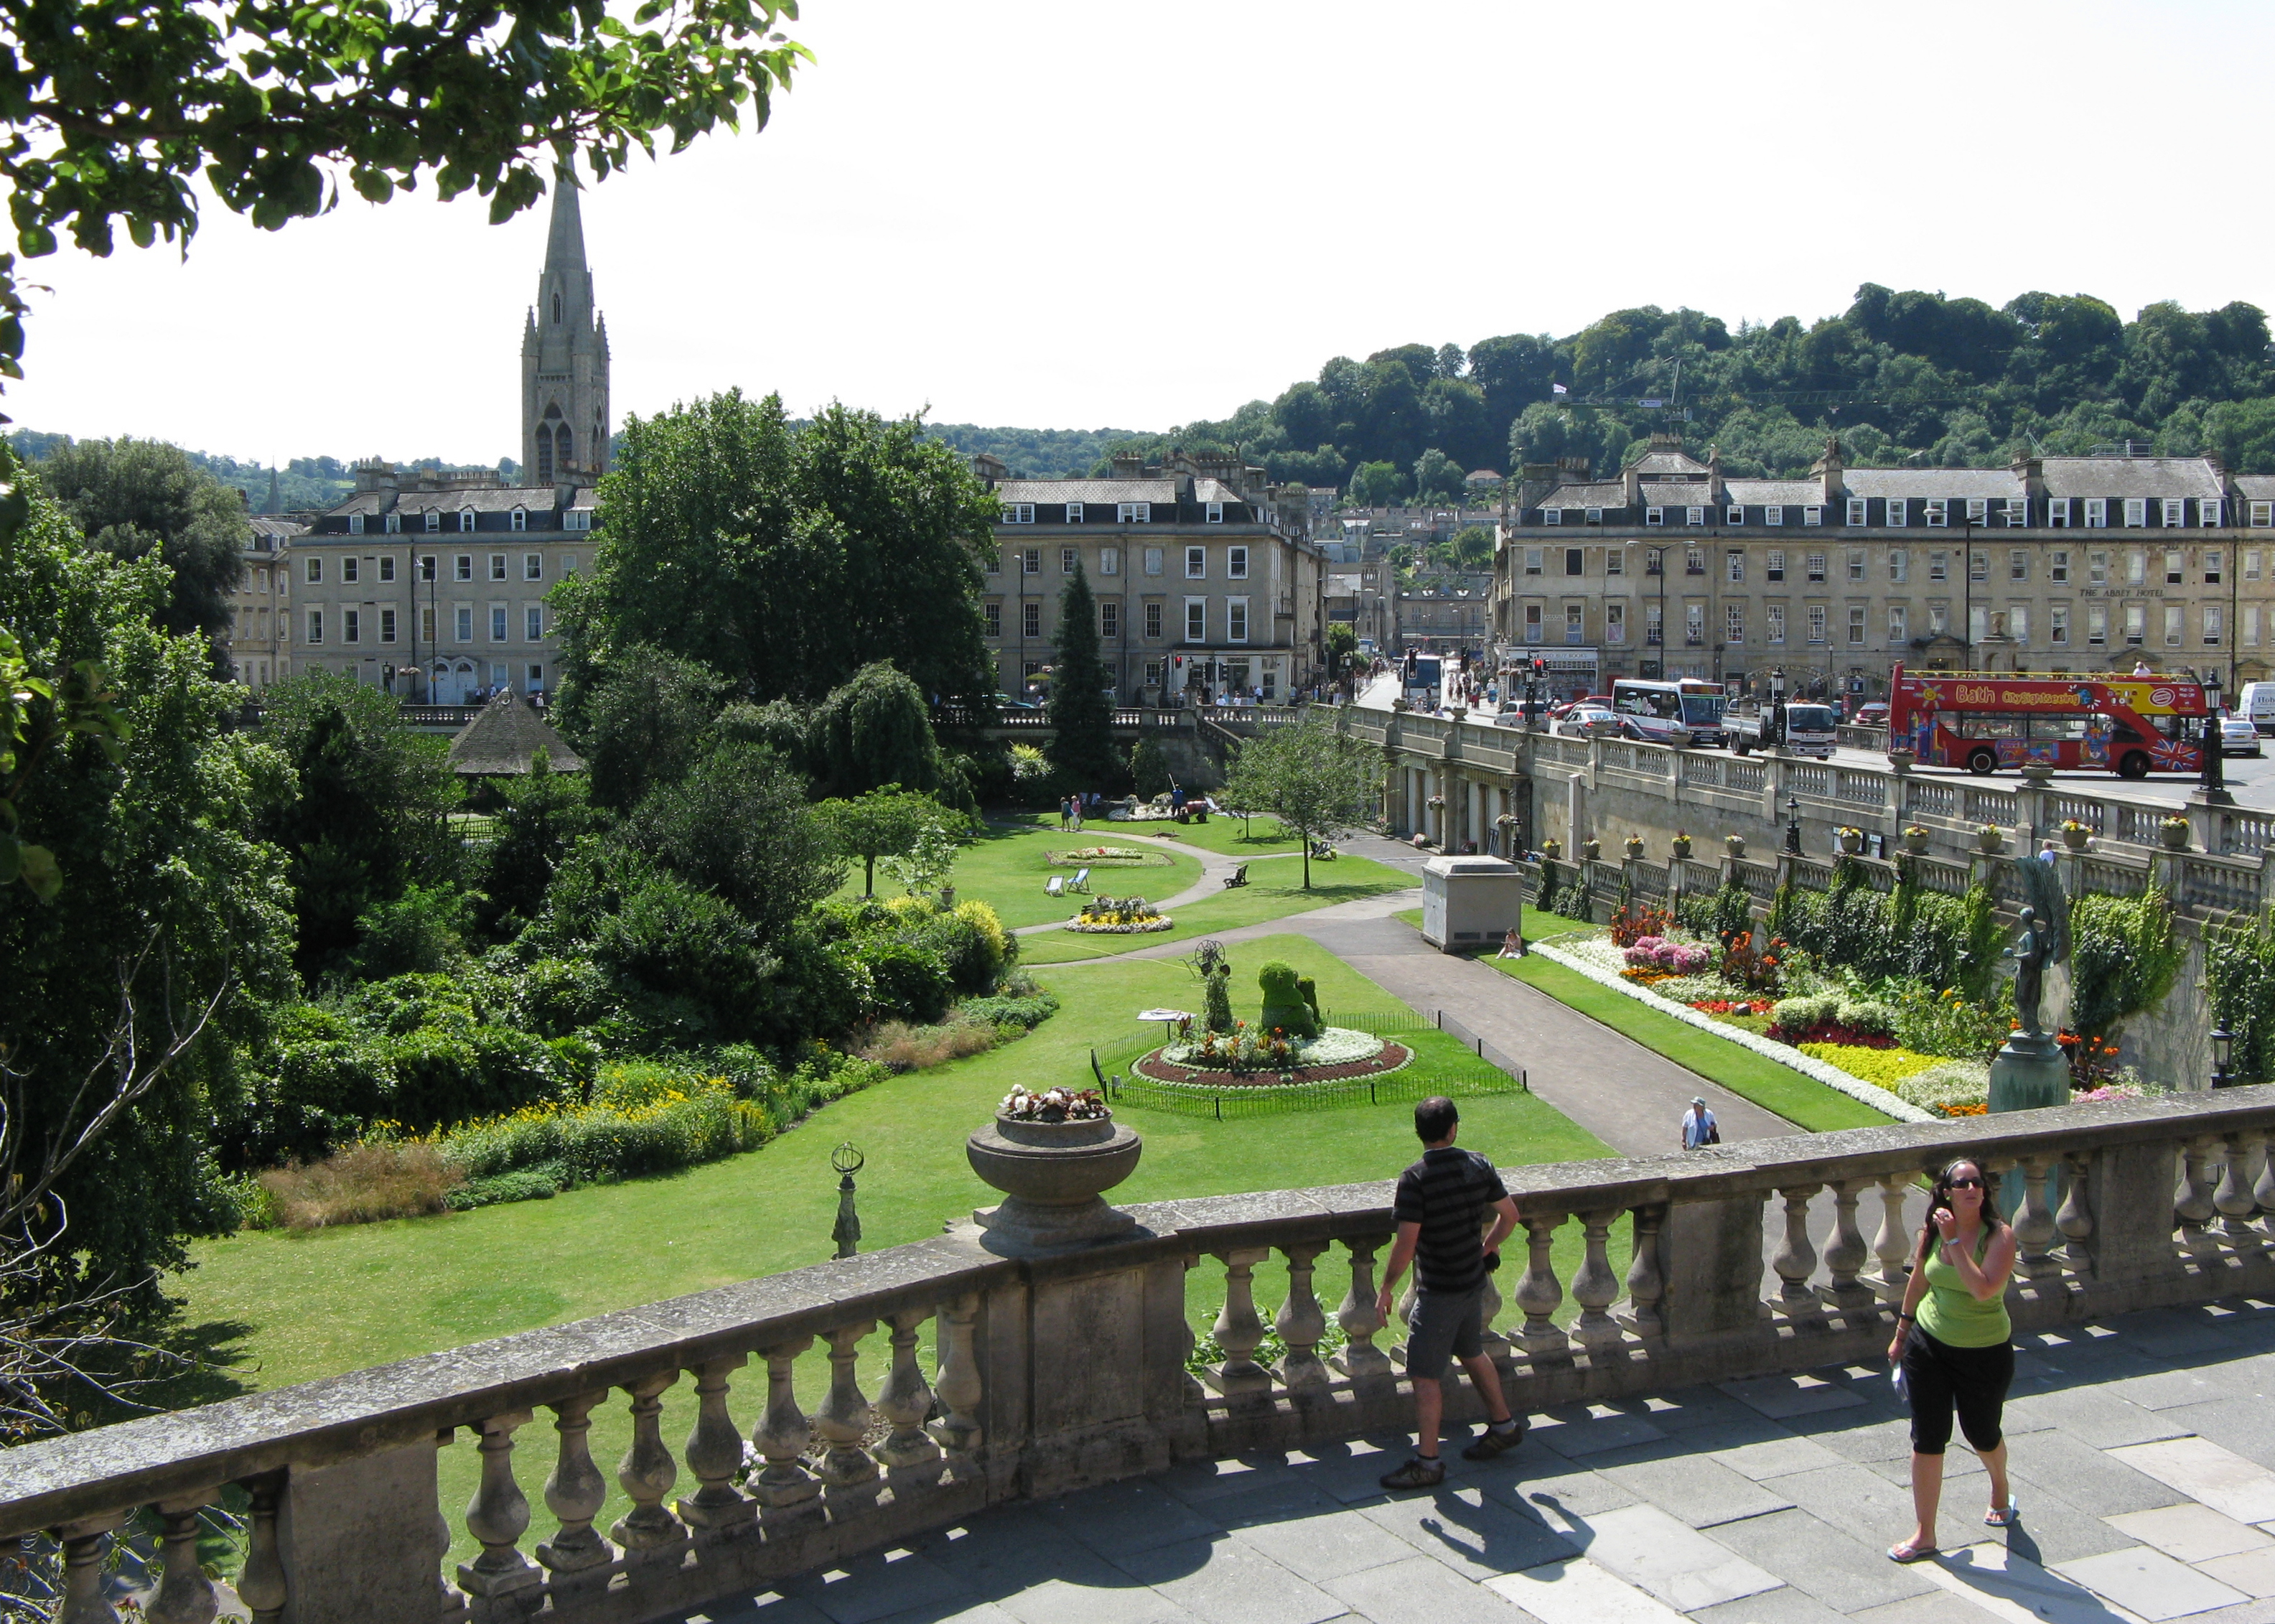 File:Park in bath england arp - Wikimedia Commons